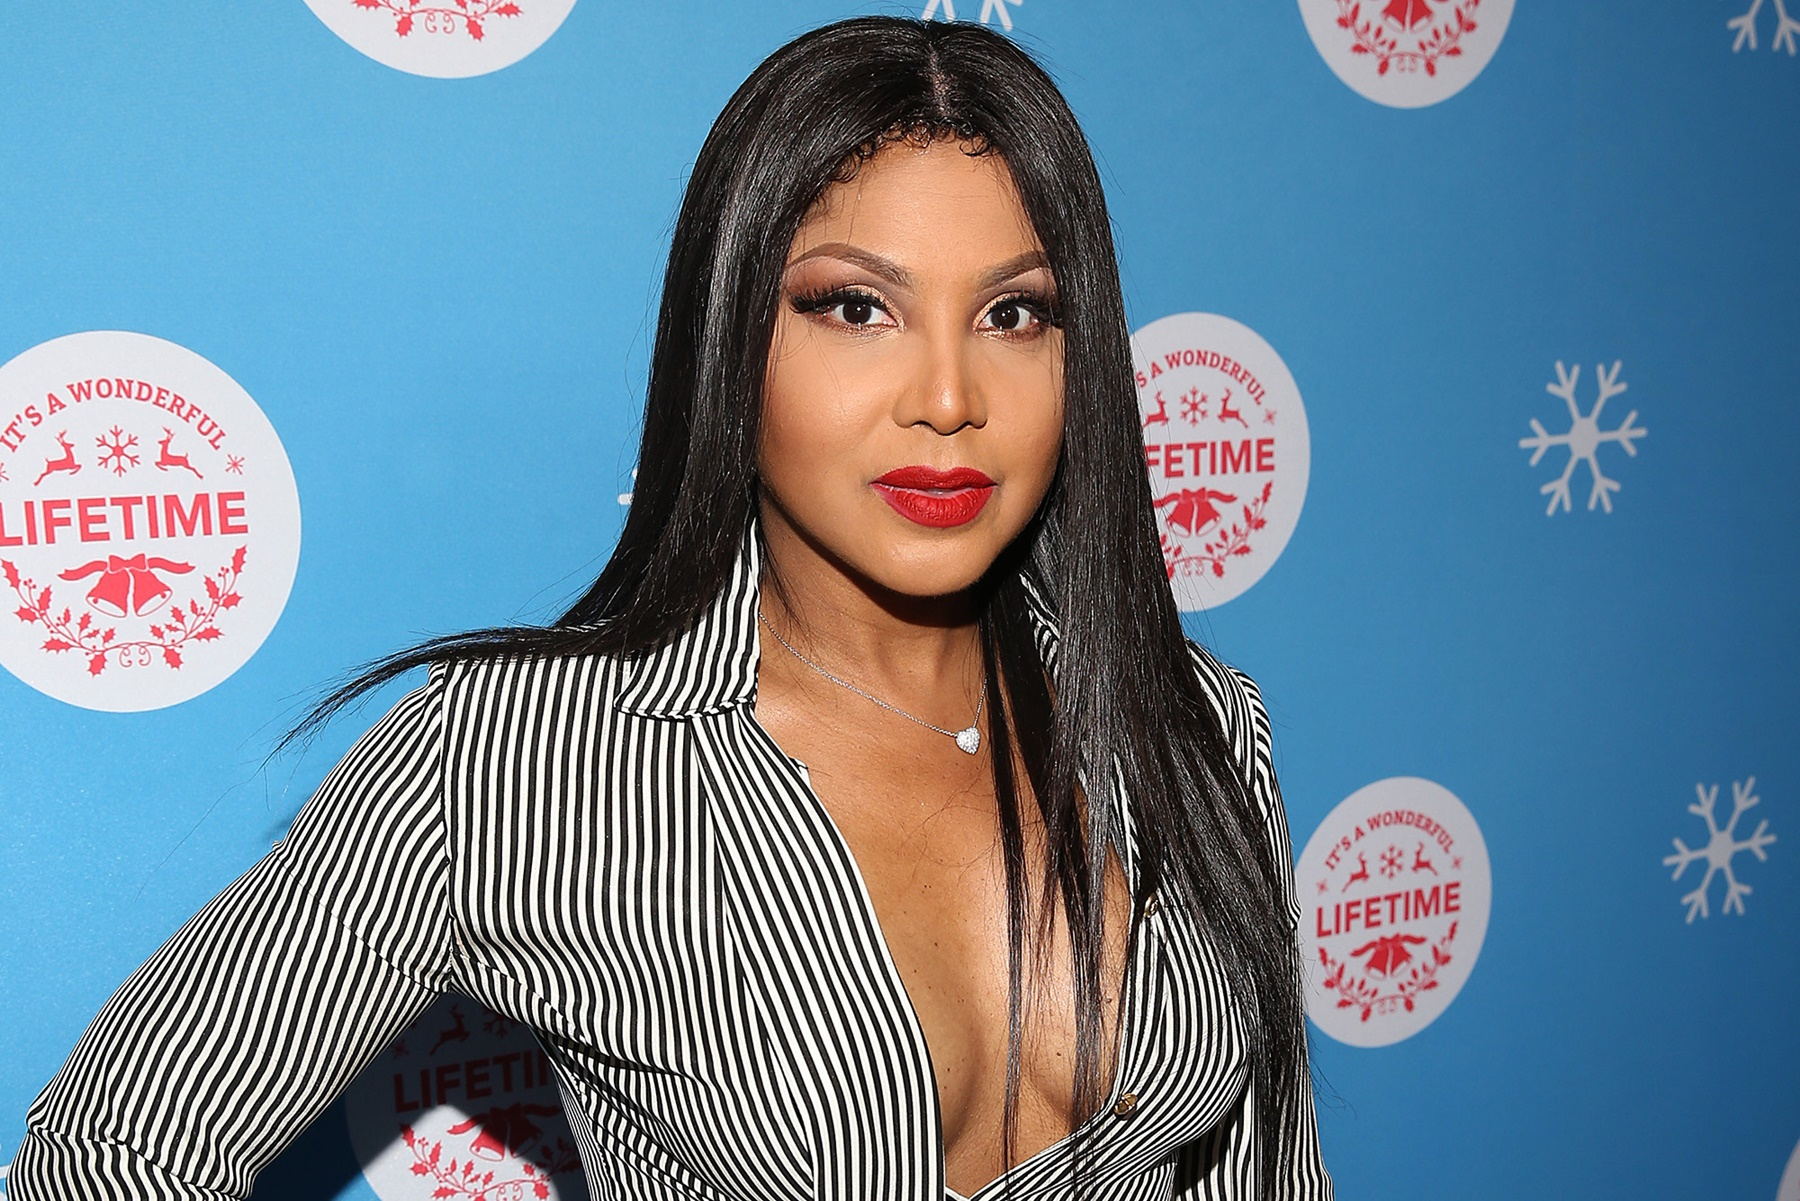 toni-braxton-poses-with-her-two-sons-denim-and-diezel-and-fans-are-gushing-over-the-handsome-young-men